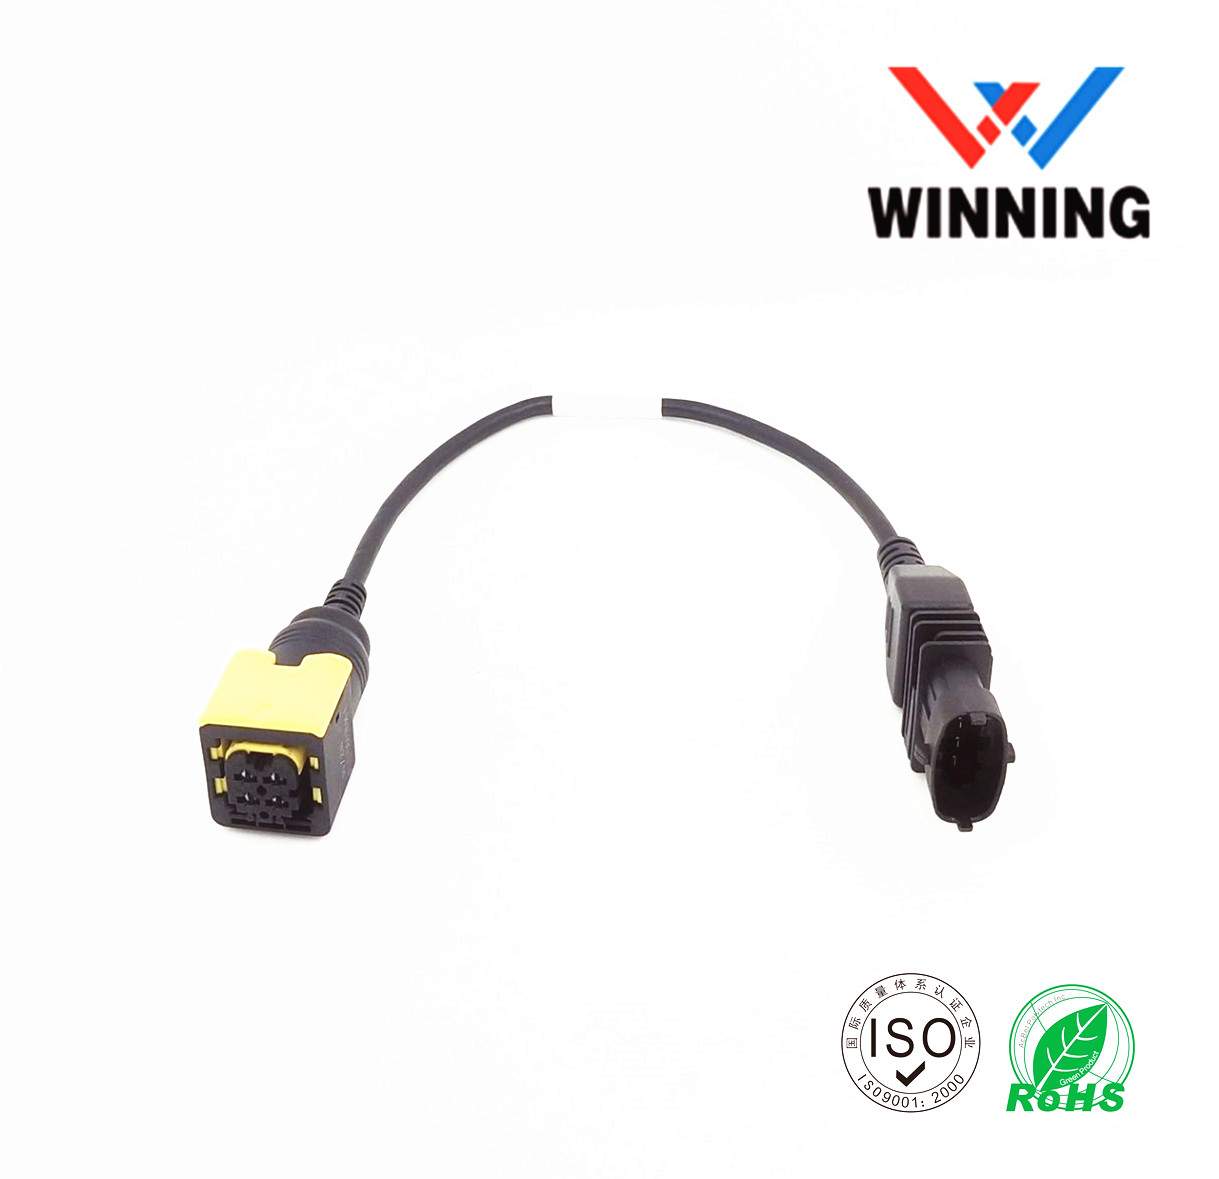 Nitrogen Oxide 4 Pin Male Connector to AMP 4 Pin Female. CABLE